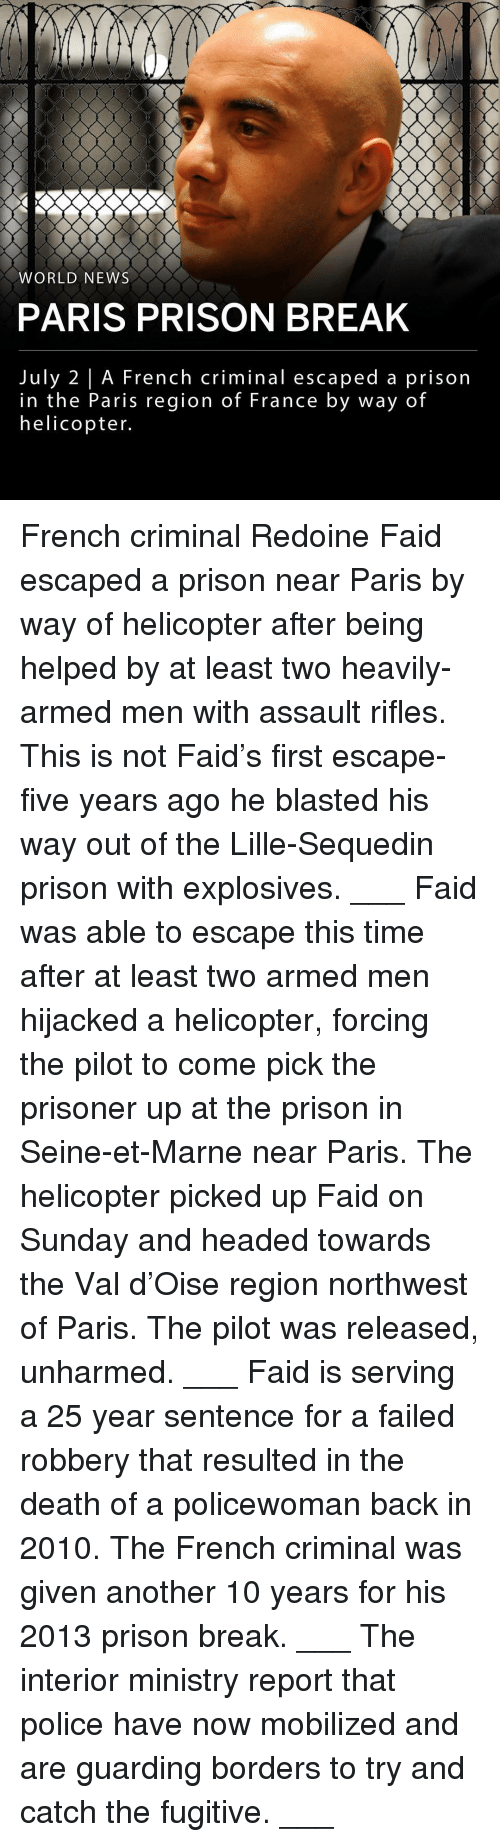 Memes, News, and Police: WORLD NEWS  PARIS PRISON BREAK  July 2 | A French criminal escaped a prison  in the Paris region of France by way of  helicopter. French criminal Redoine Faid escaped a prison near Paris by way of helicopter after being helped by at least two heavily-armed men with assault rifles. This is not Faid's first escape- five years ago he blasted his way out of the Lille-Sequedin prison with explosives. ___ Faid was able to escape this time after at least two armed men hijacked a helicopter, forcing the pilot to come pick the prisoner up at the prison in Seine-et-Marne near Paris. The helicopter picked up Faid on Sunday and headed towards the Val d'Oise region northwest of Paris. The pilot was released, unharmed. ___ Faid is serving a 25 year sentence for a failed robbery that resulted in the death of a policewoman back in 2010. The French criminal was given another 10 years for his 2013 prison break. ___ The interior ministry report that police have now mobilized and are guarding borders to try and catch the fugitive. ___